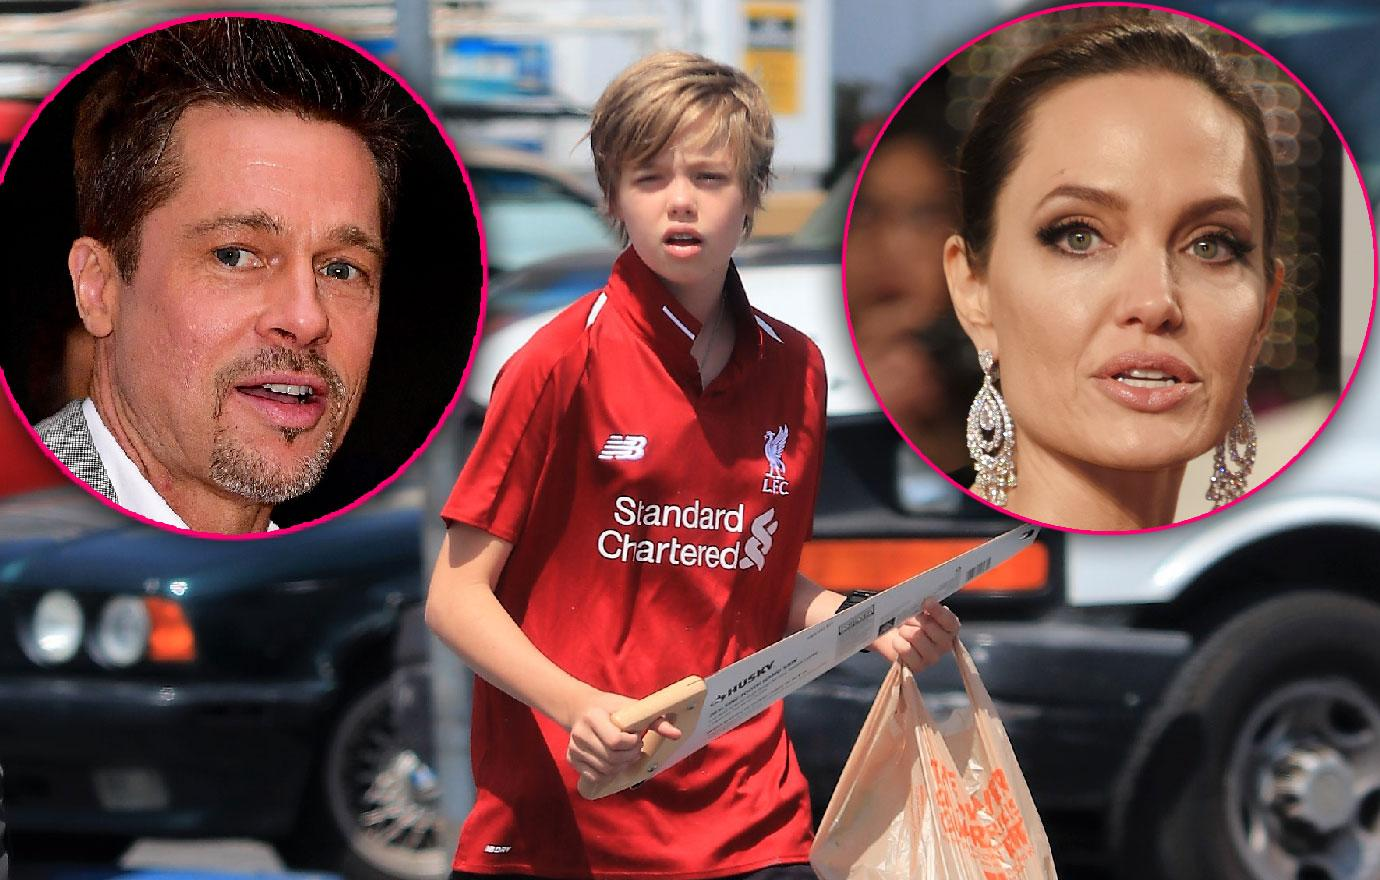 Shiloh Pitt Spotted During Parents Angelina And Brad Divorce